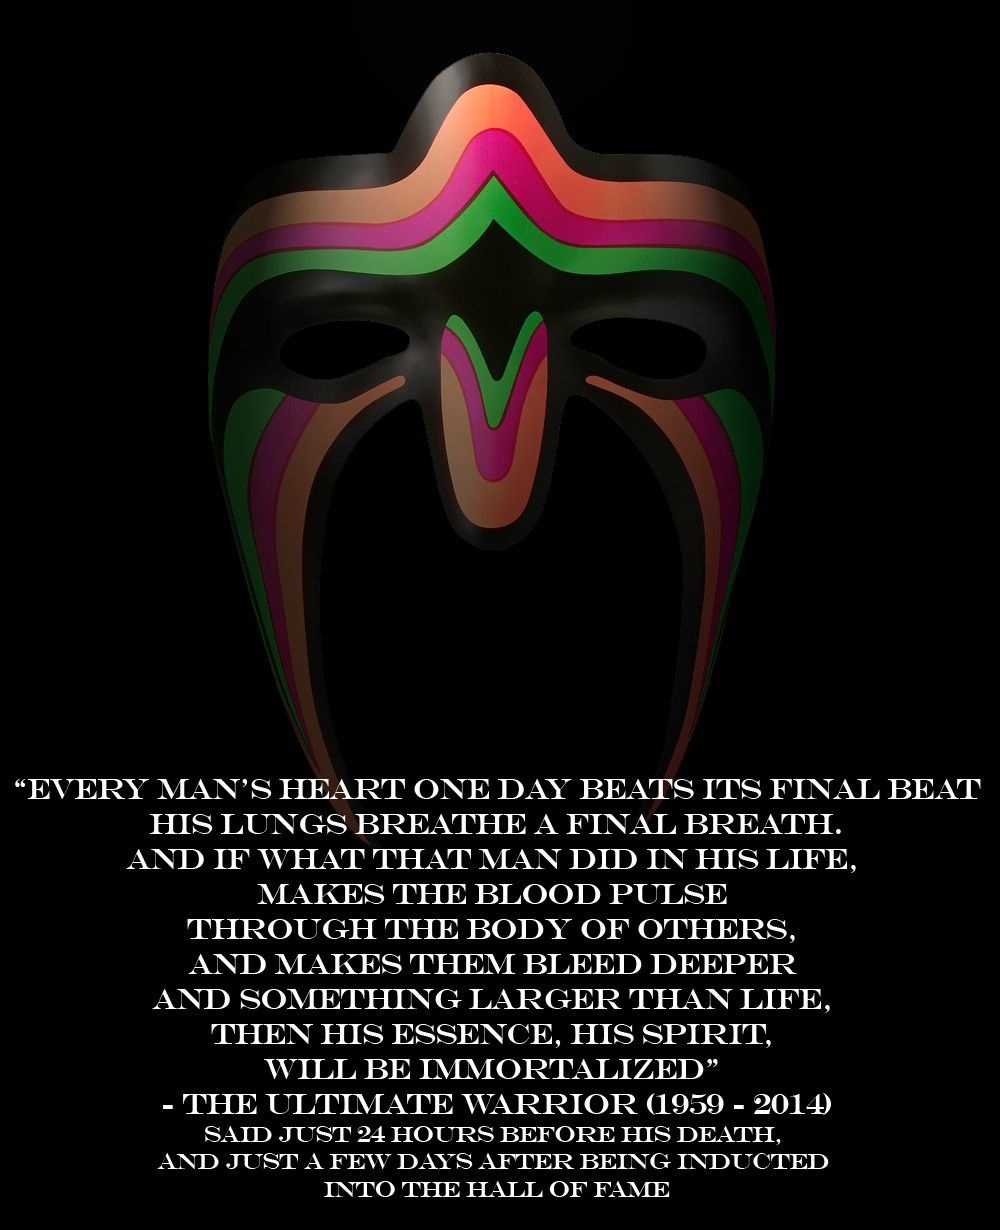 Truly Inspirational last words from the Ultimate Warrior ...